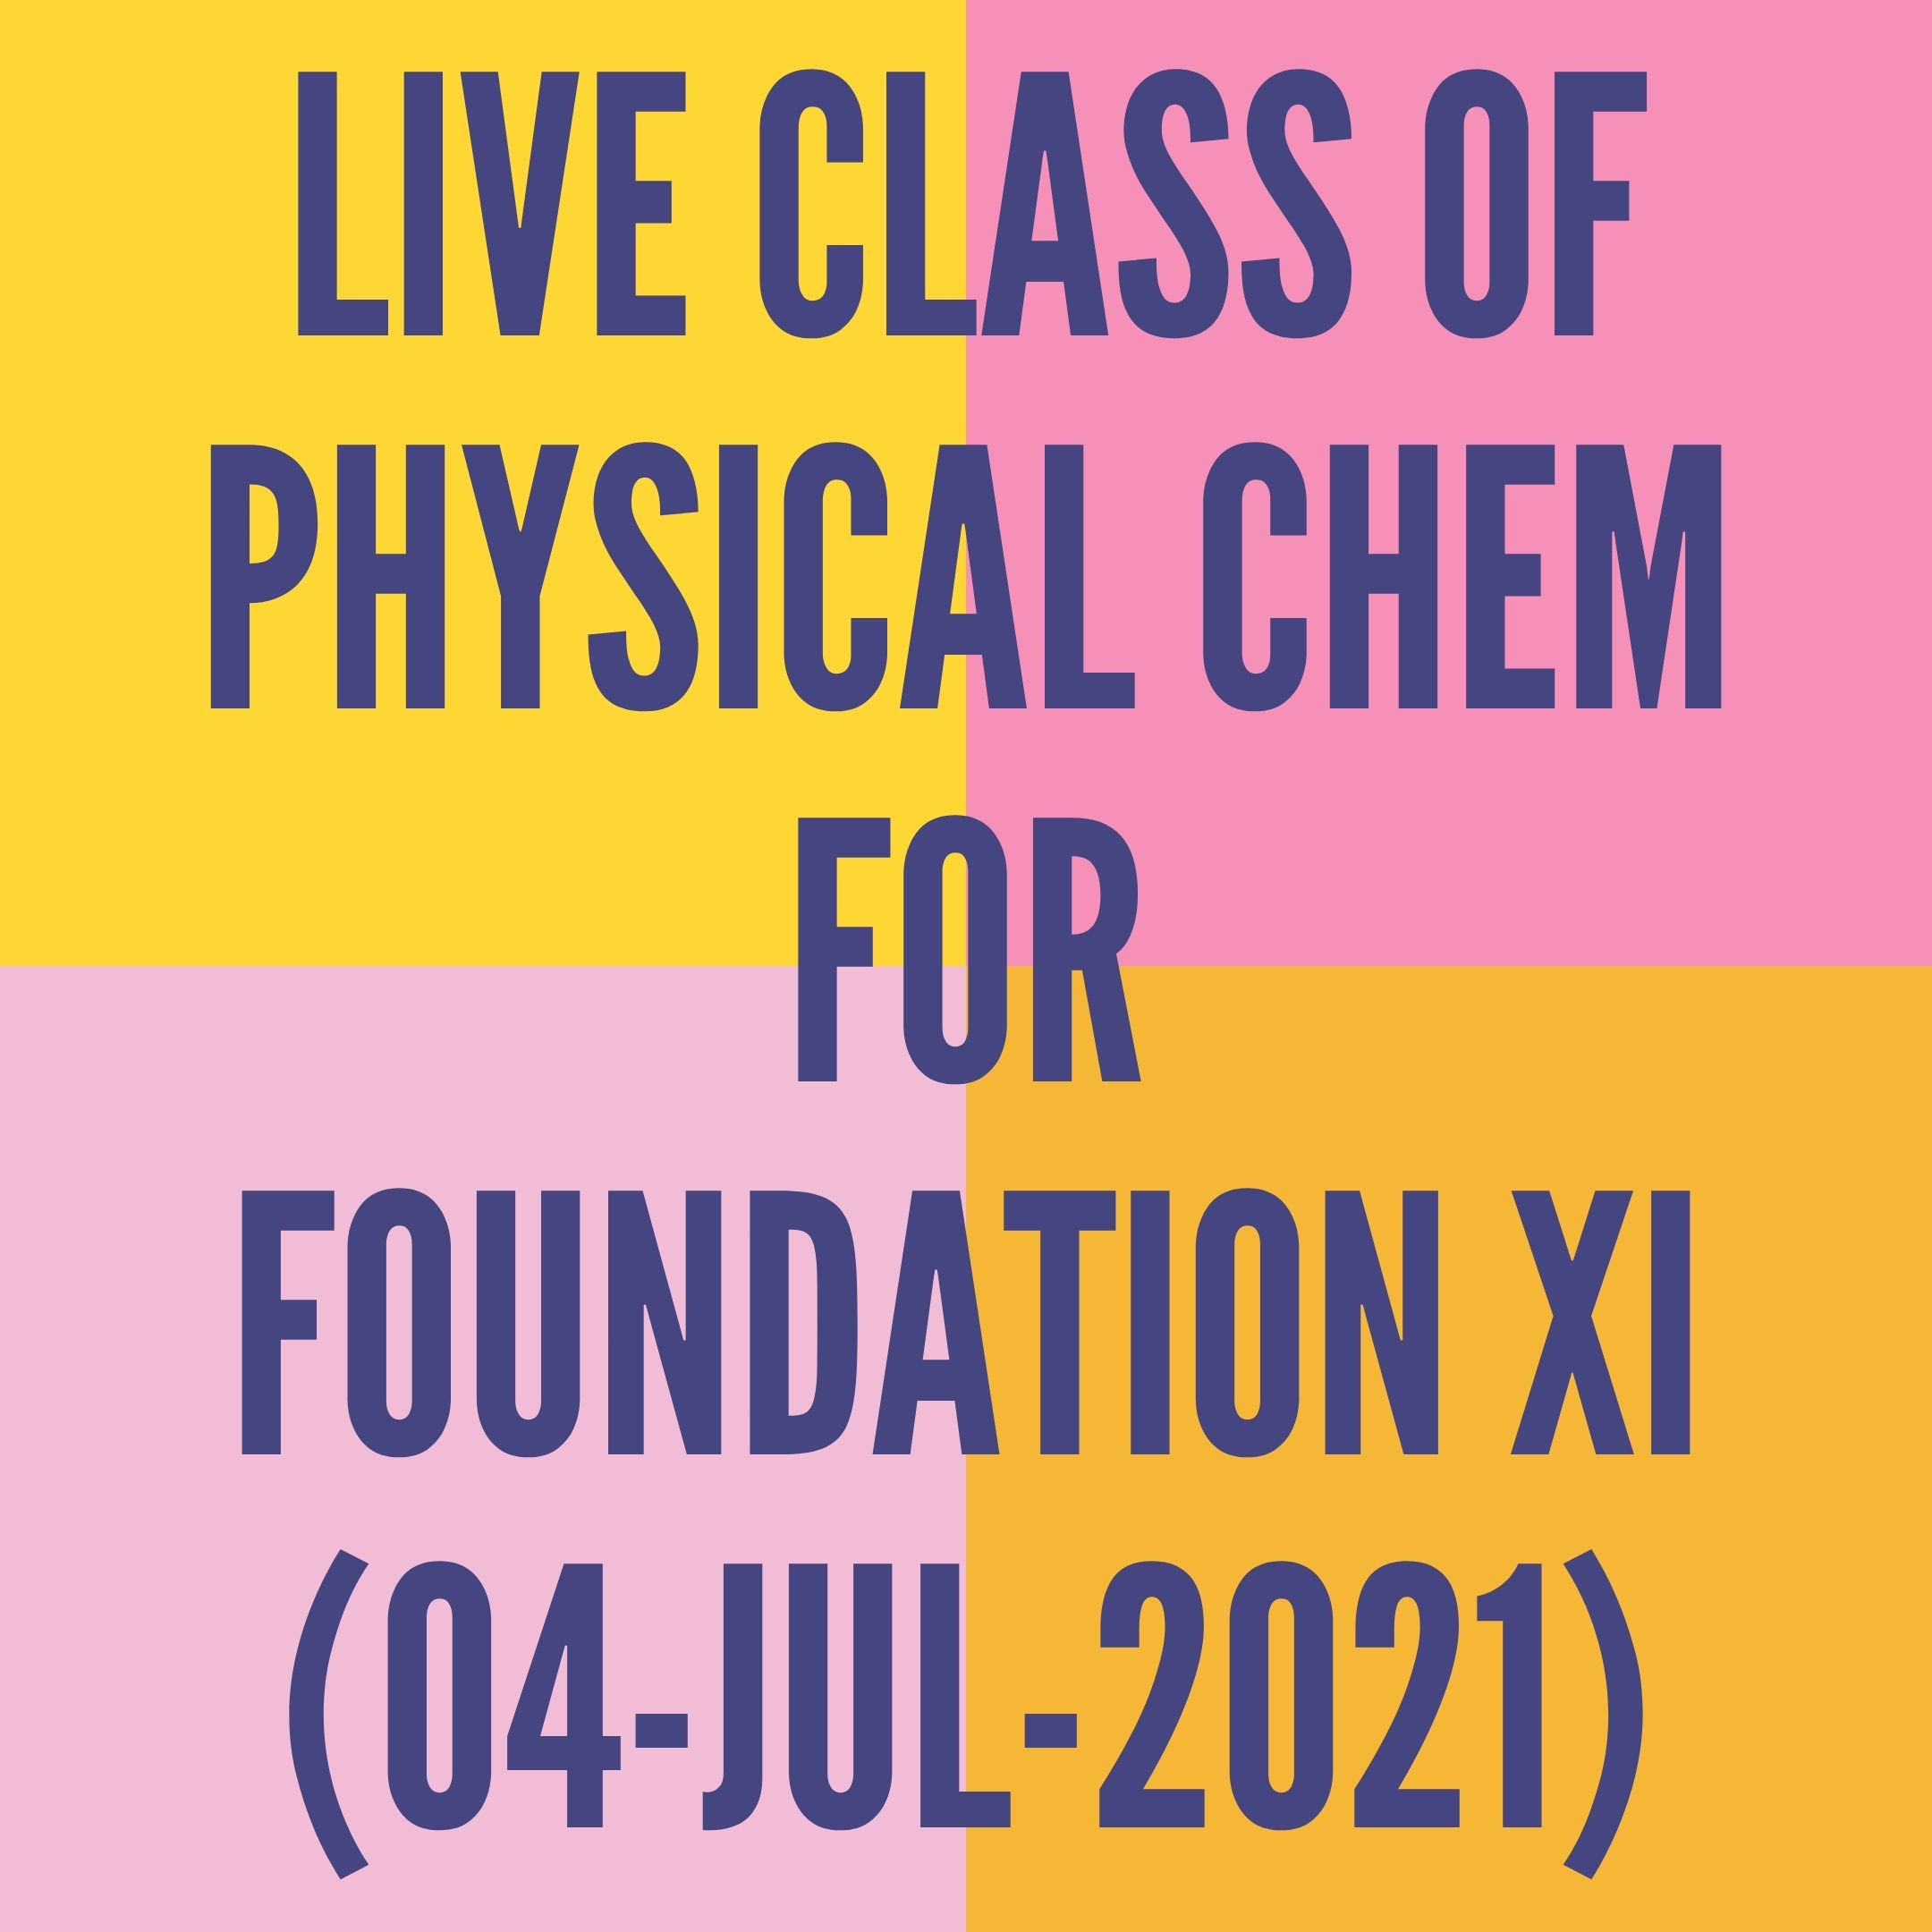 LIVE CLASS OF PHYSICAL CHEM FOR FOUNDATION XI (04-JUL-2021) CONCENTRATION OF SOLUTION